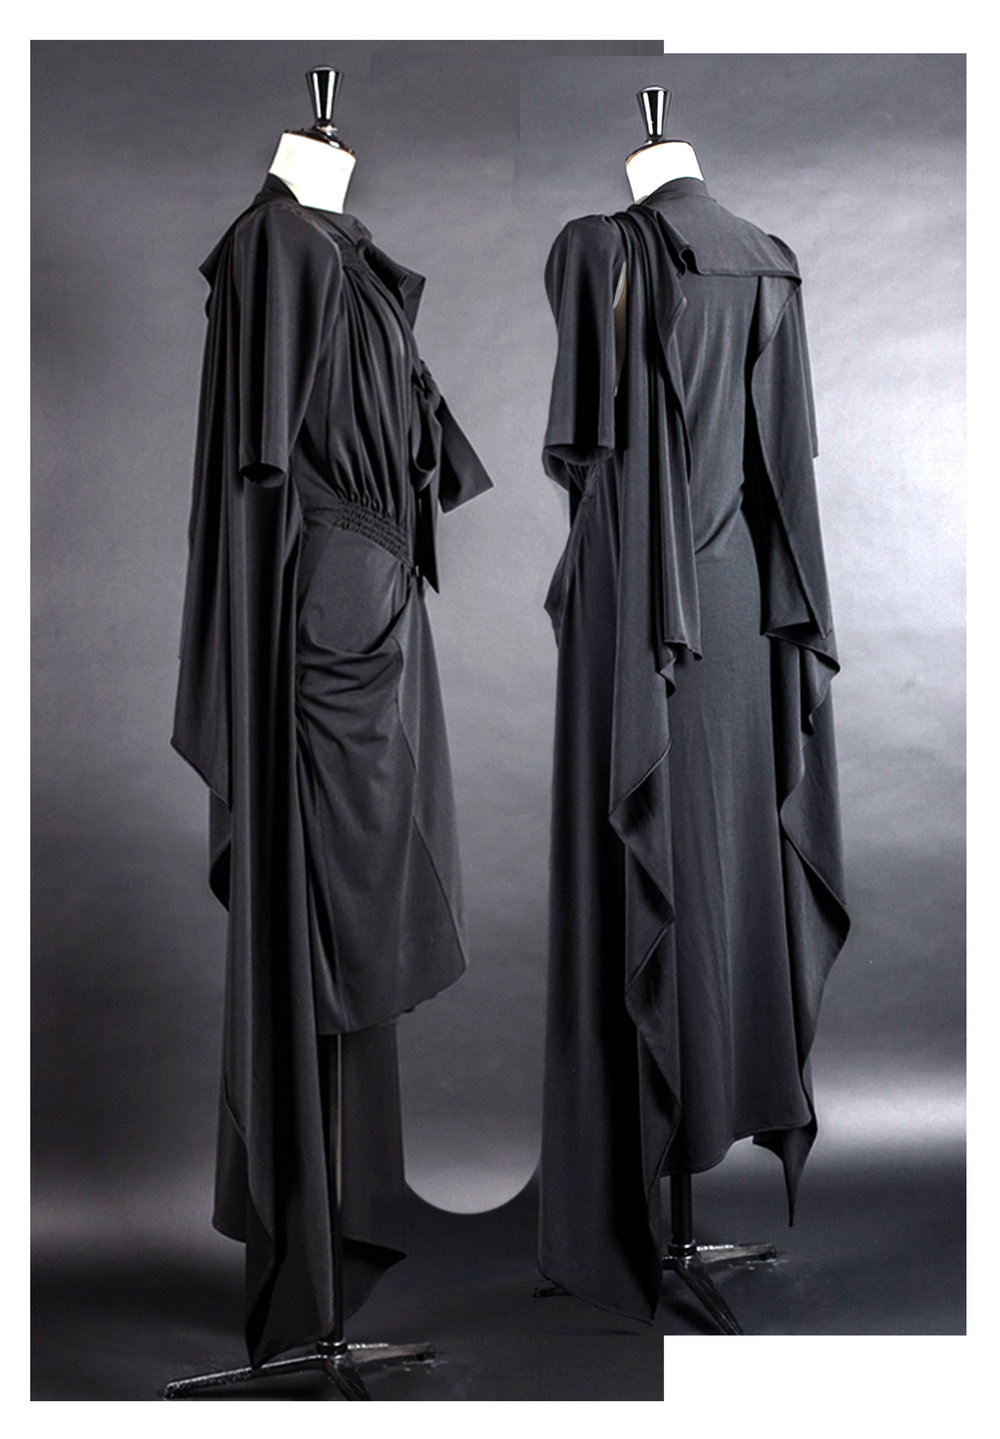 DRESS ltd Flat Pack Sculpture Maxi Dress, from NEW BLACK CAPSULE COLLECTION